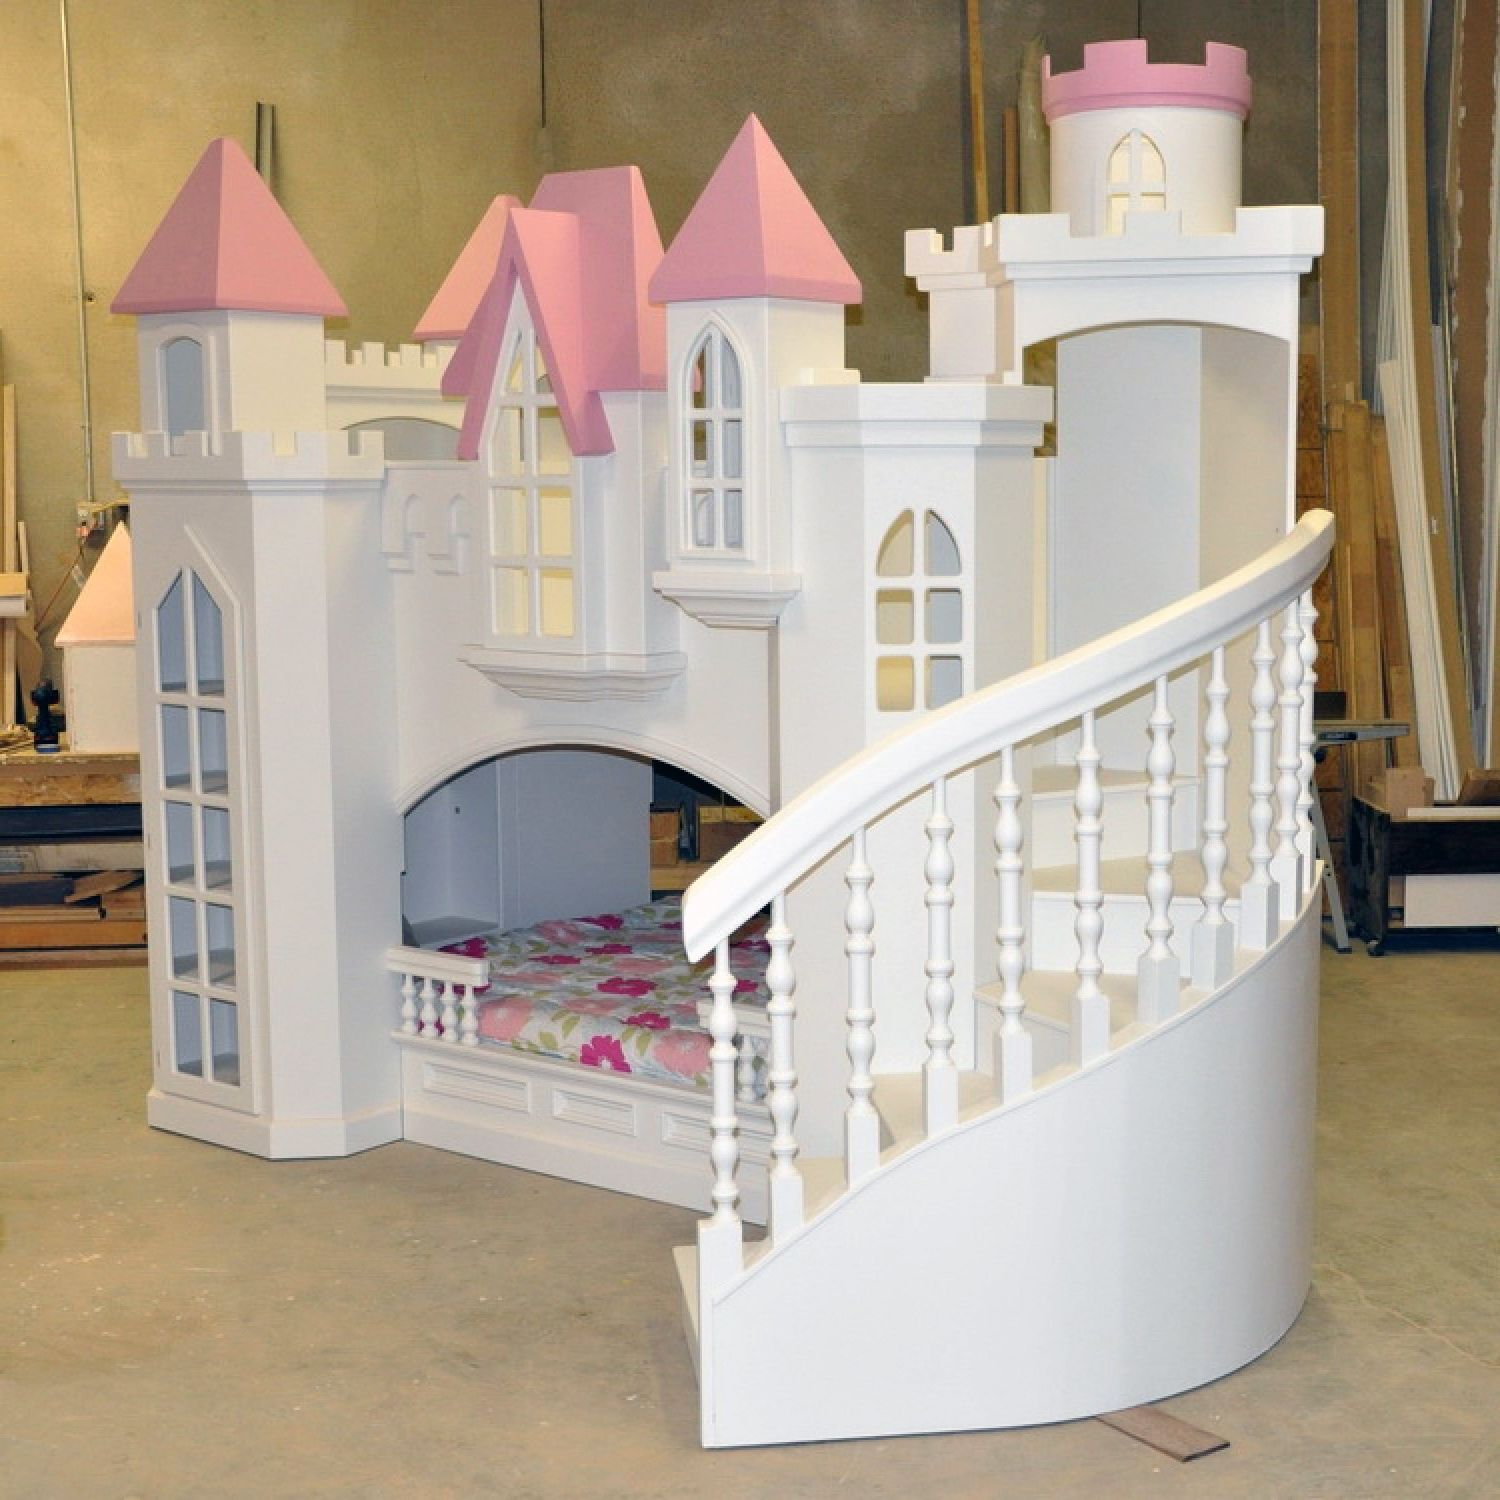 Bunk beds with slide and stairs - Unique Bunk Beds Unique Bunk Beds For Kids Bedroom Design Ideas Excellent Castle Bunk